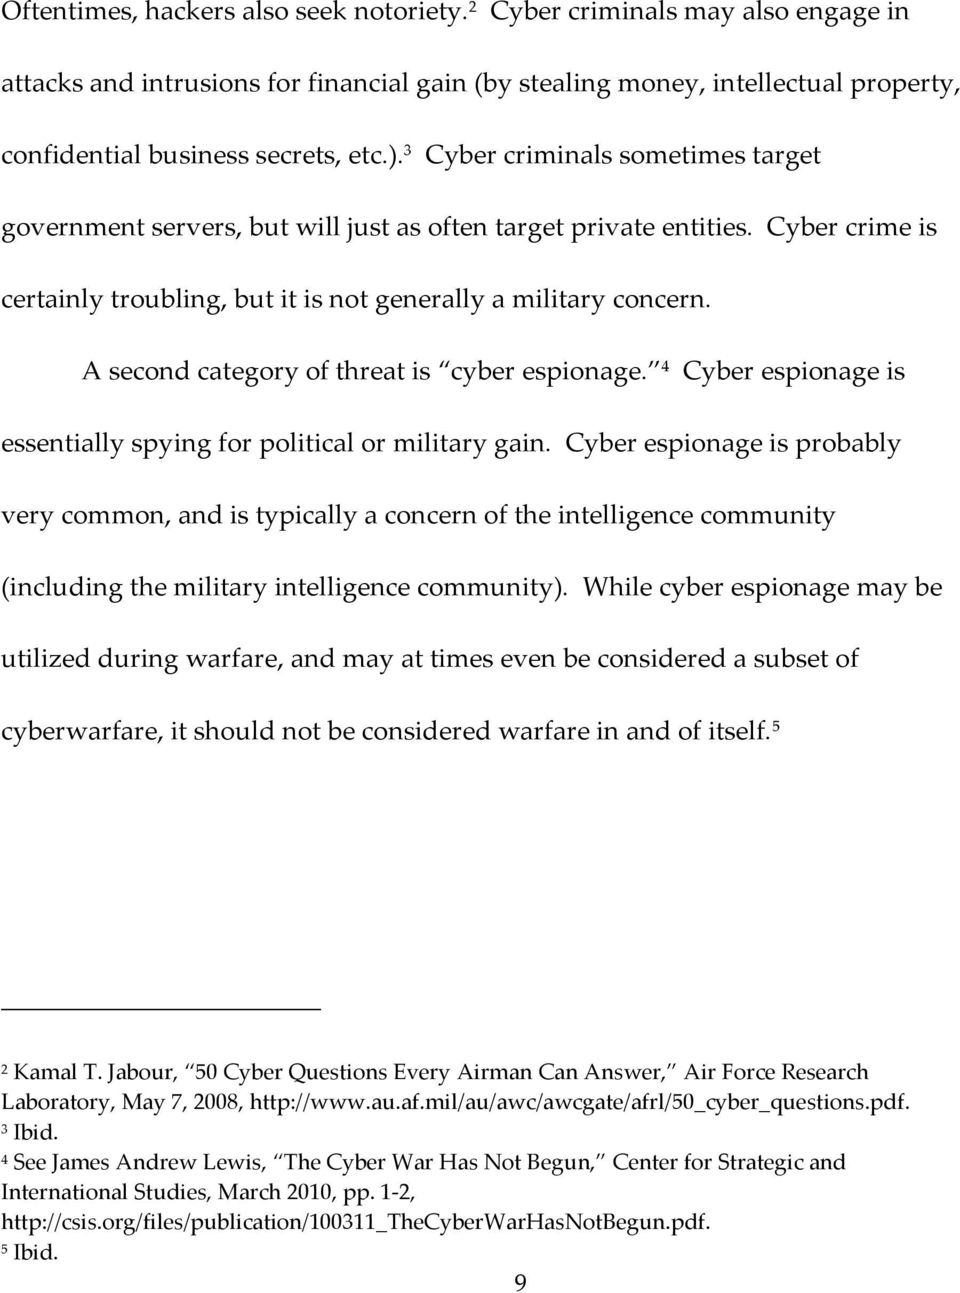 A second category of threat is cyber espionage. 4 Cyber espionage is essentially spying for political or military gain.